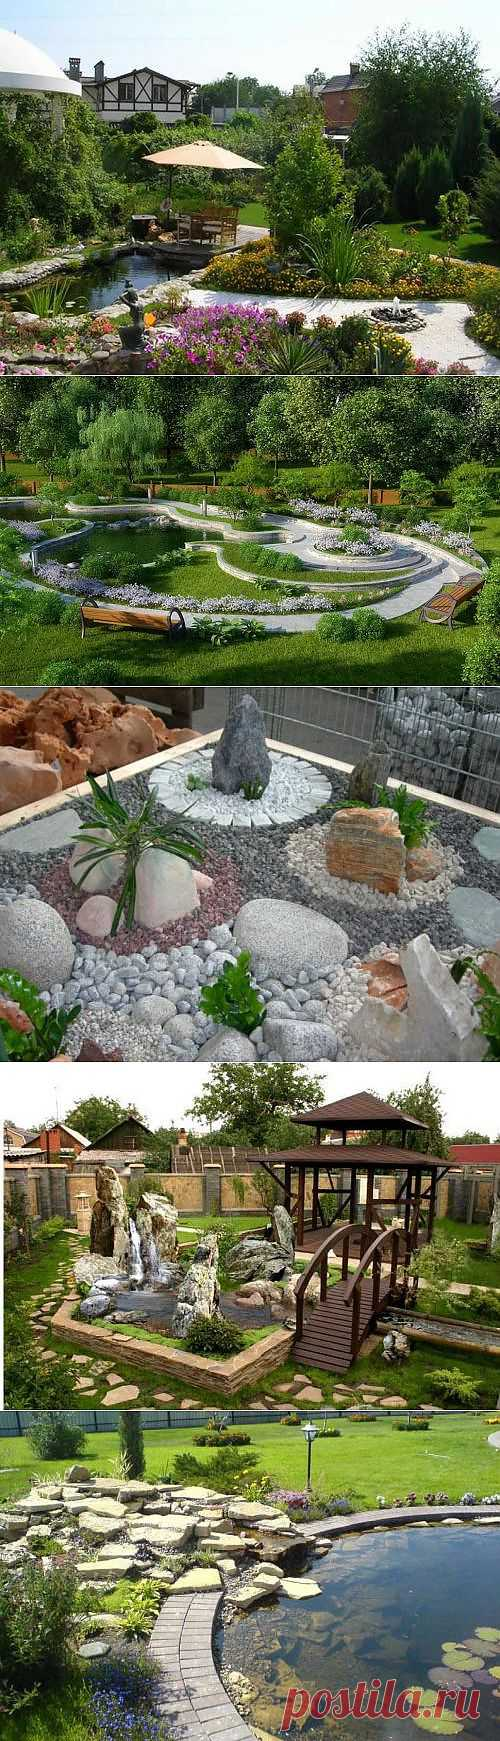 Landscaping | our cozy house